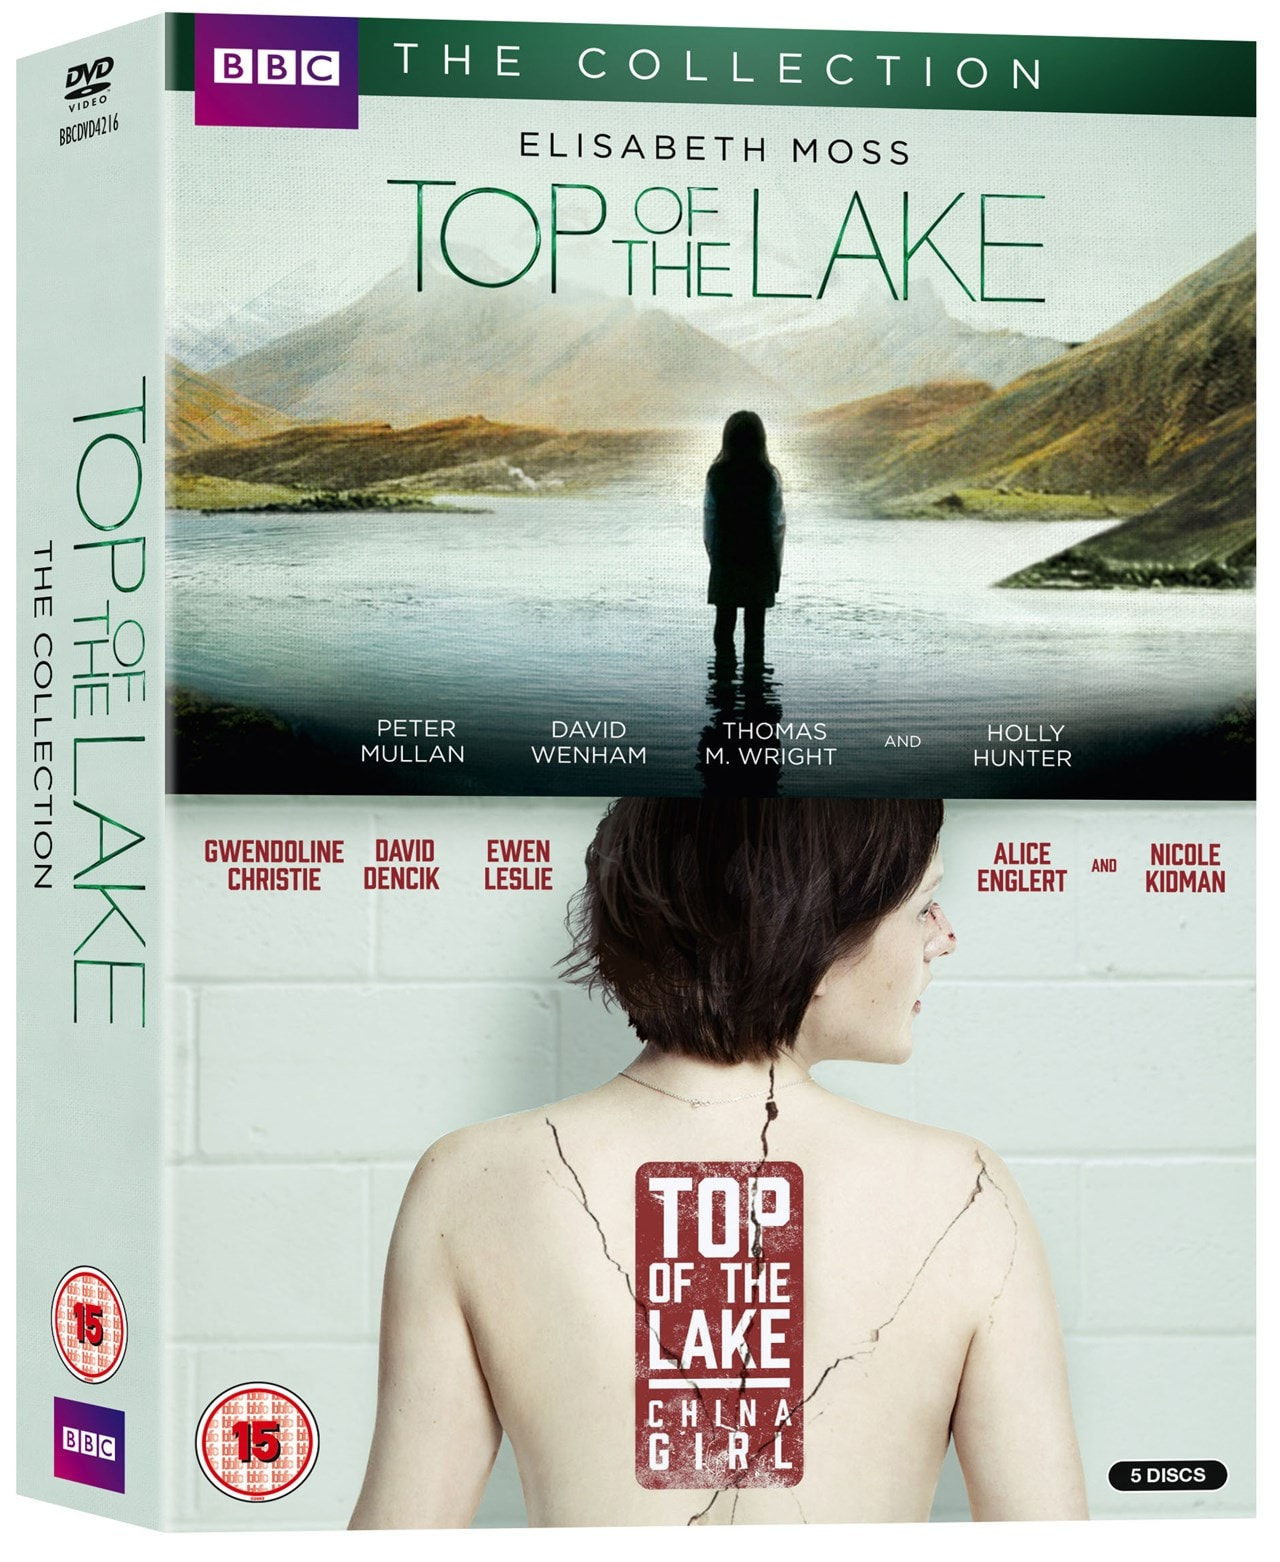 Top of the Lake: The Collection - 2